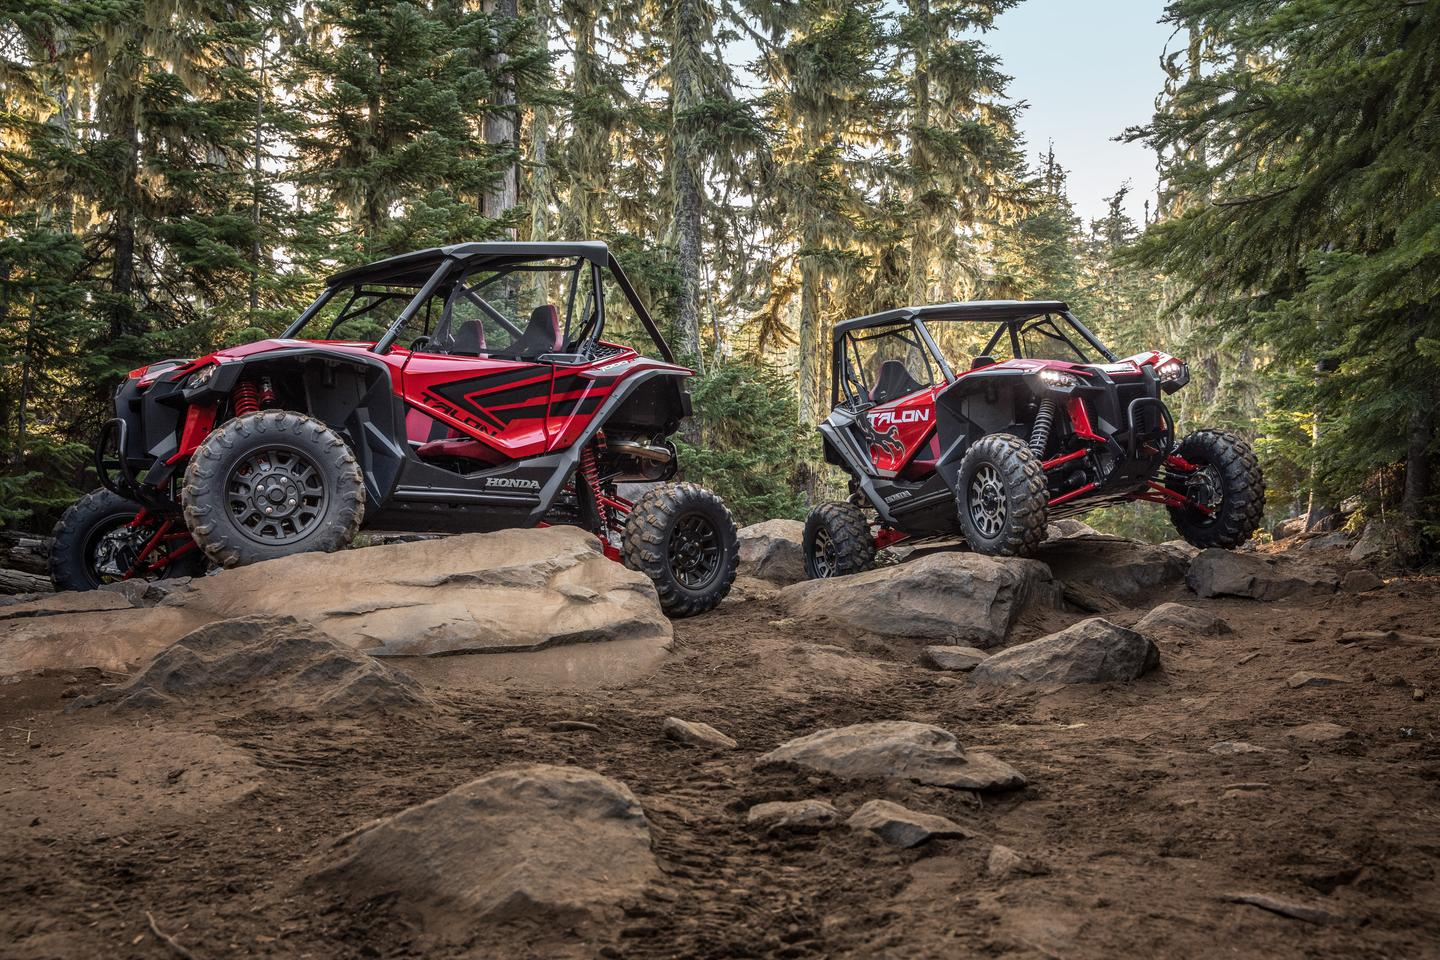 Honda jumps into the SxS game with the new Talon 1000X and 1000R